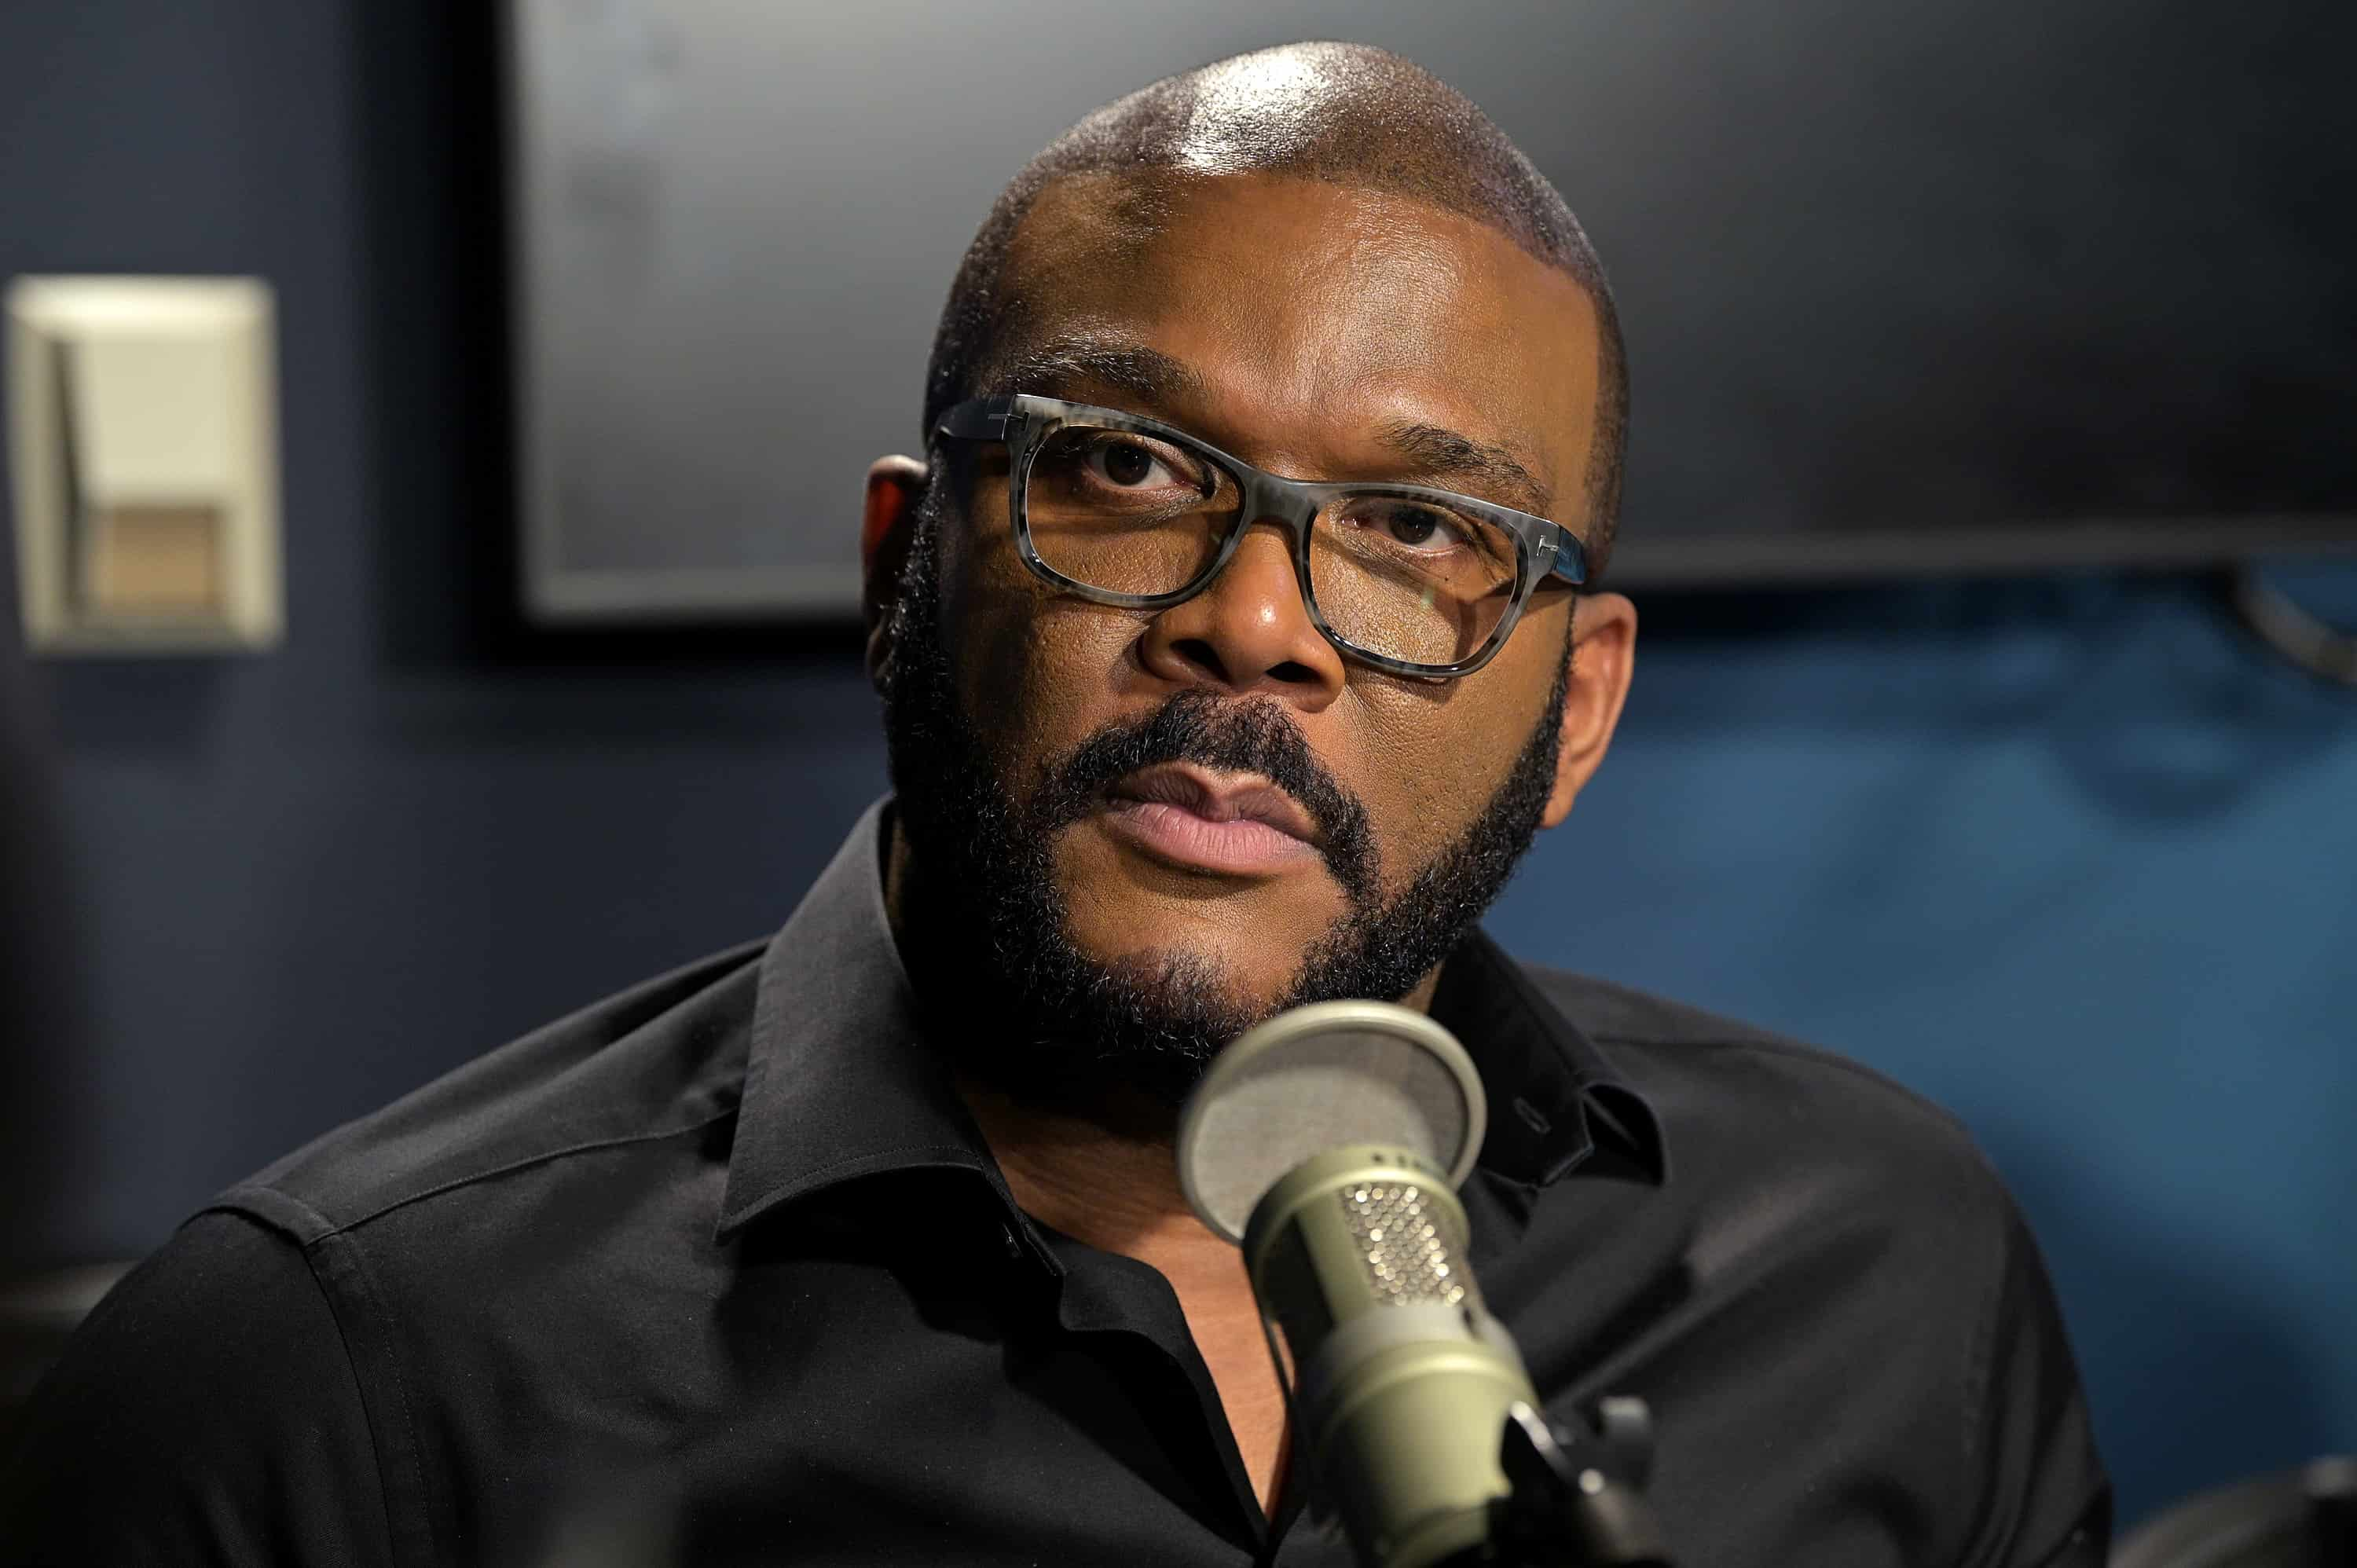 Tyler Perry has hired a famous medical examiner to conduct a second autopsy on his nephew who allegedly committed suicide in jail. Tyler says he feels his death is suspicious.